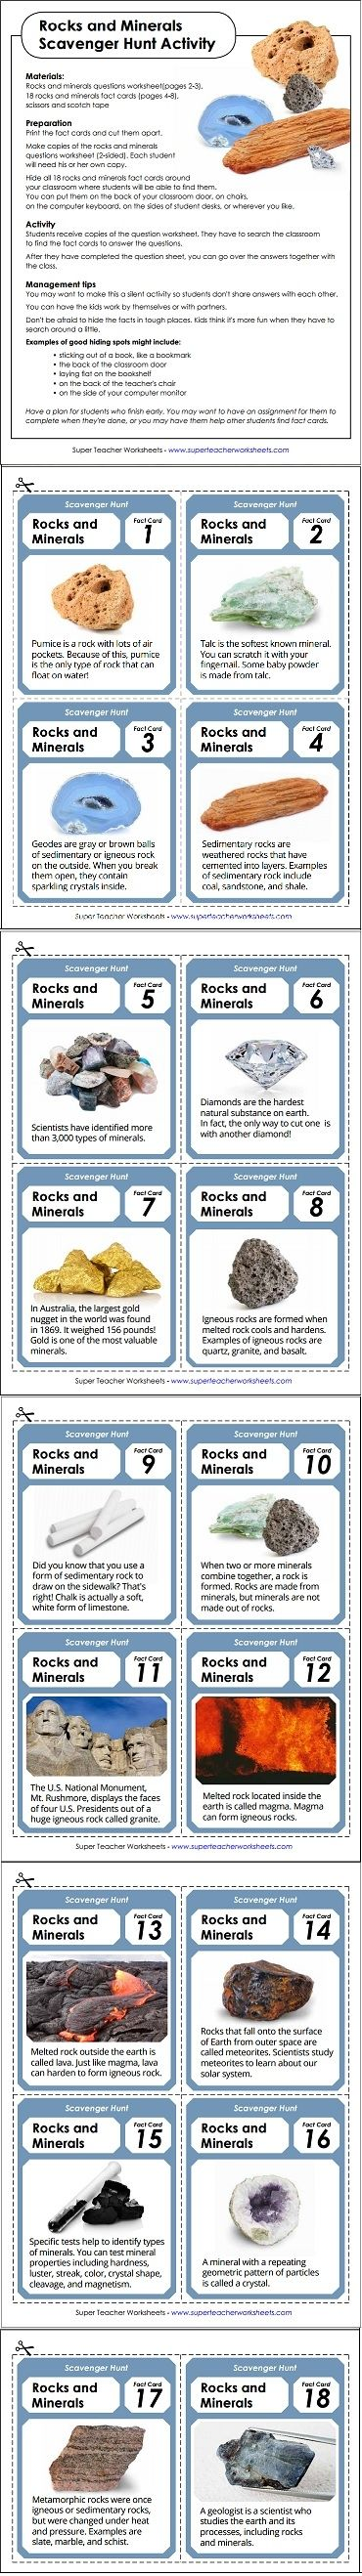 Learn all about rocks and minerals with a fun scavenger hunt!